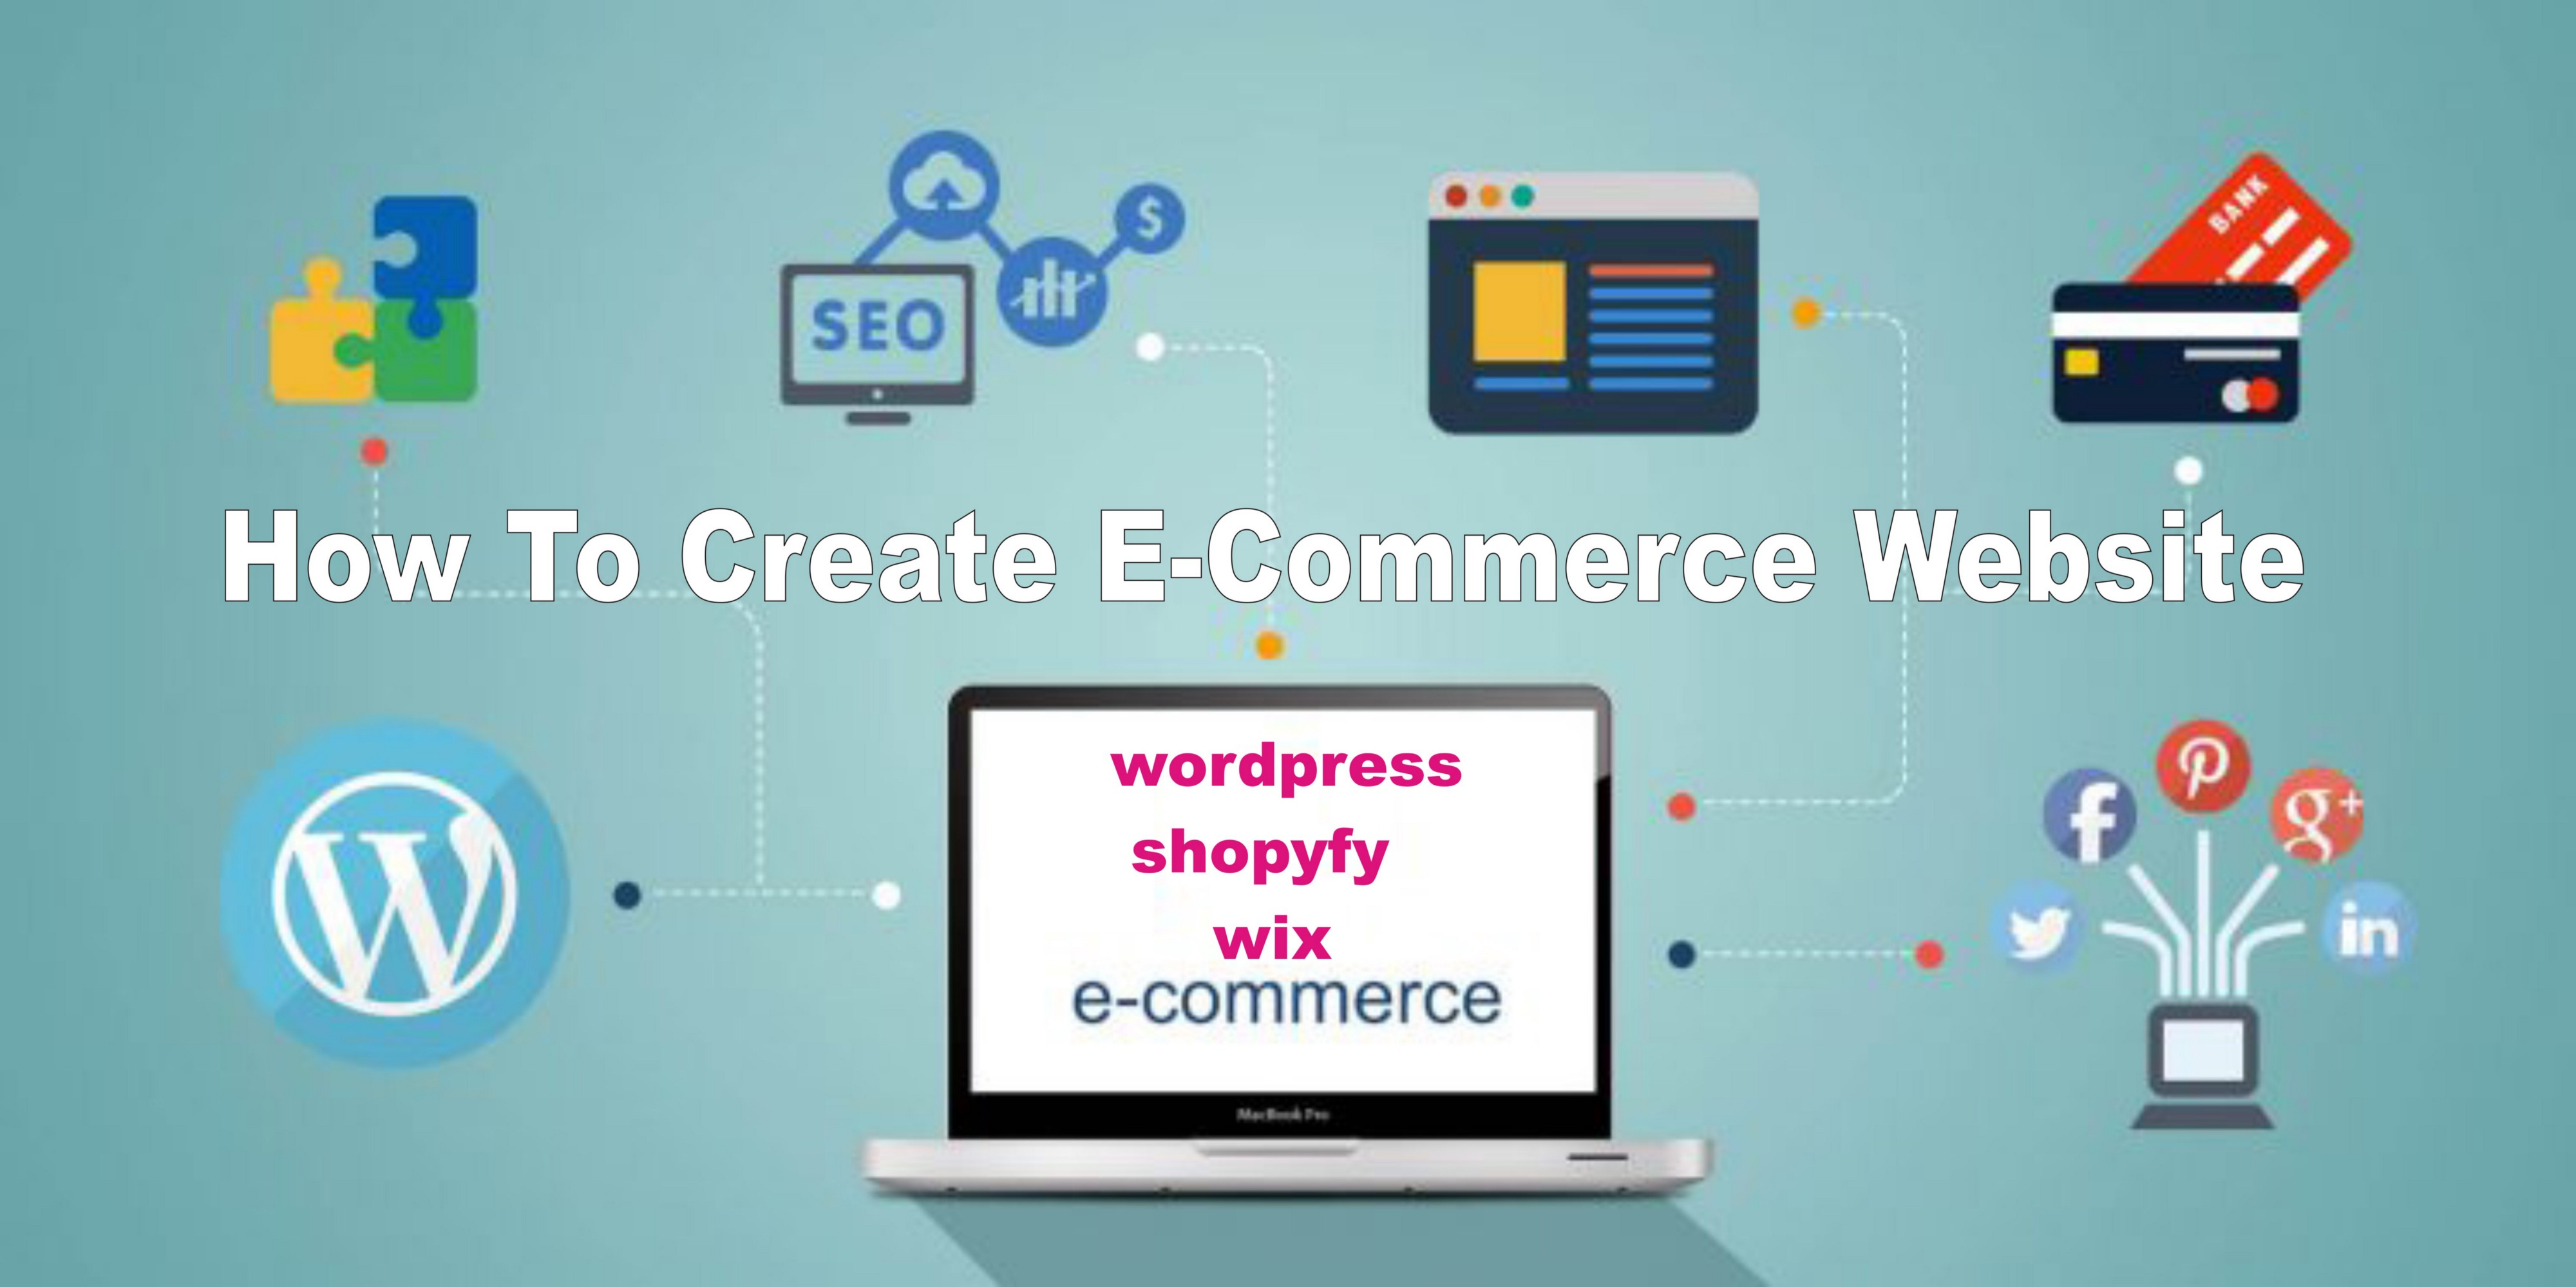 I will build ecommerce website store with wordpress,  woocommerce,  Shopify,  Wix